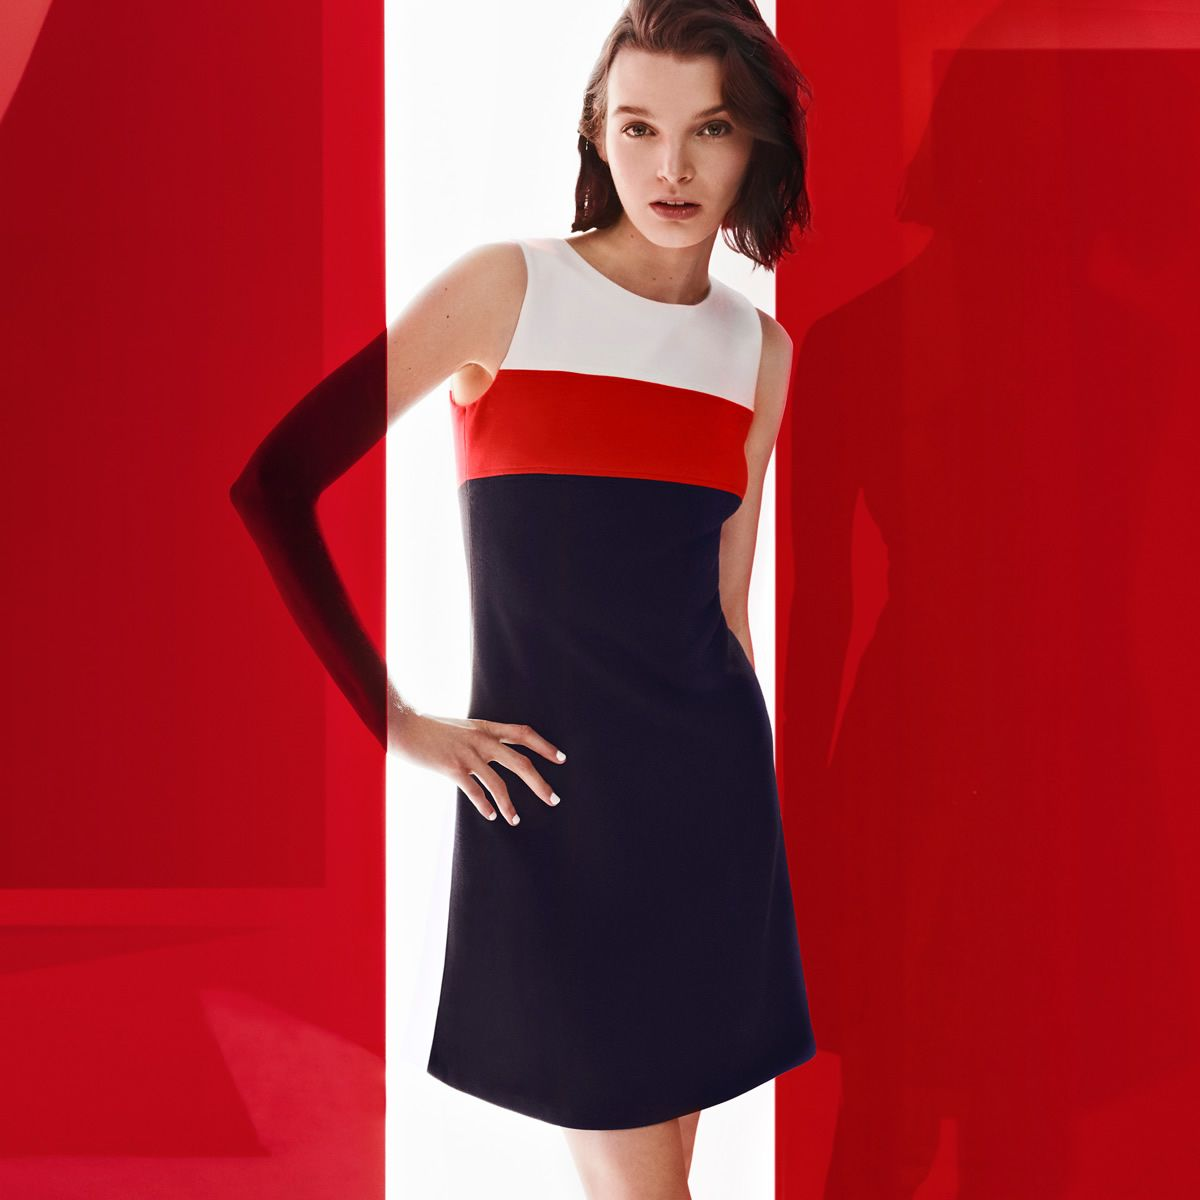 df9cb34c97f Tommy Hilfiger Dresses for Women - Macy's